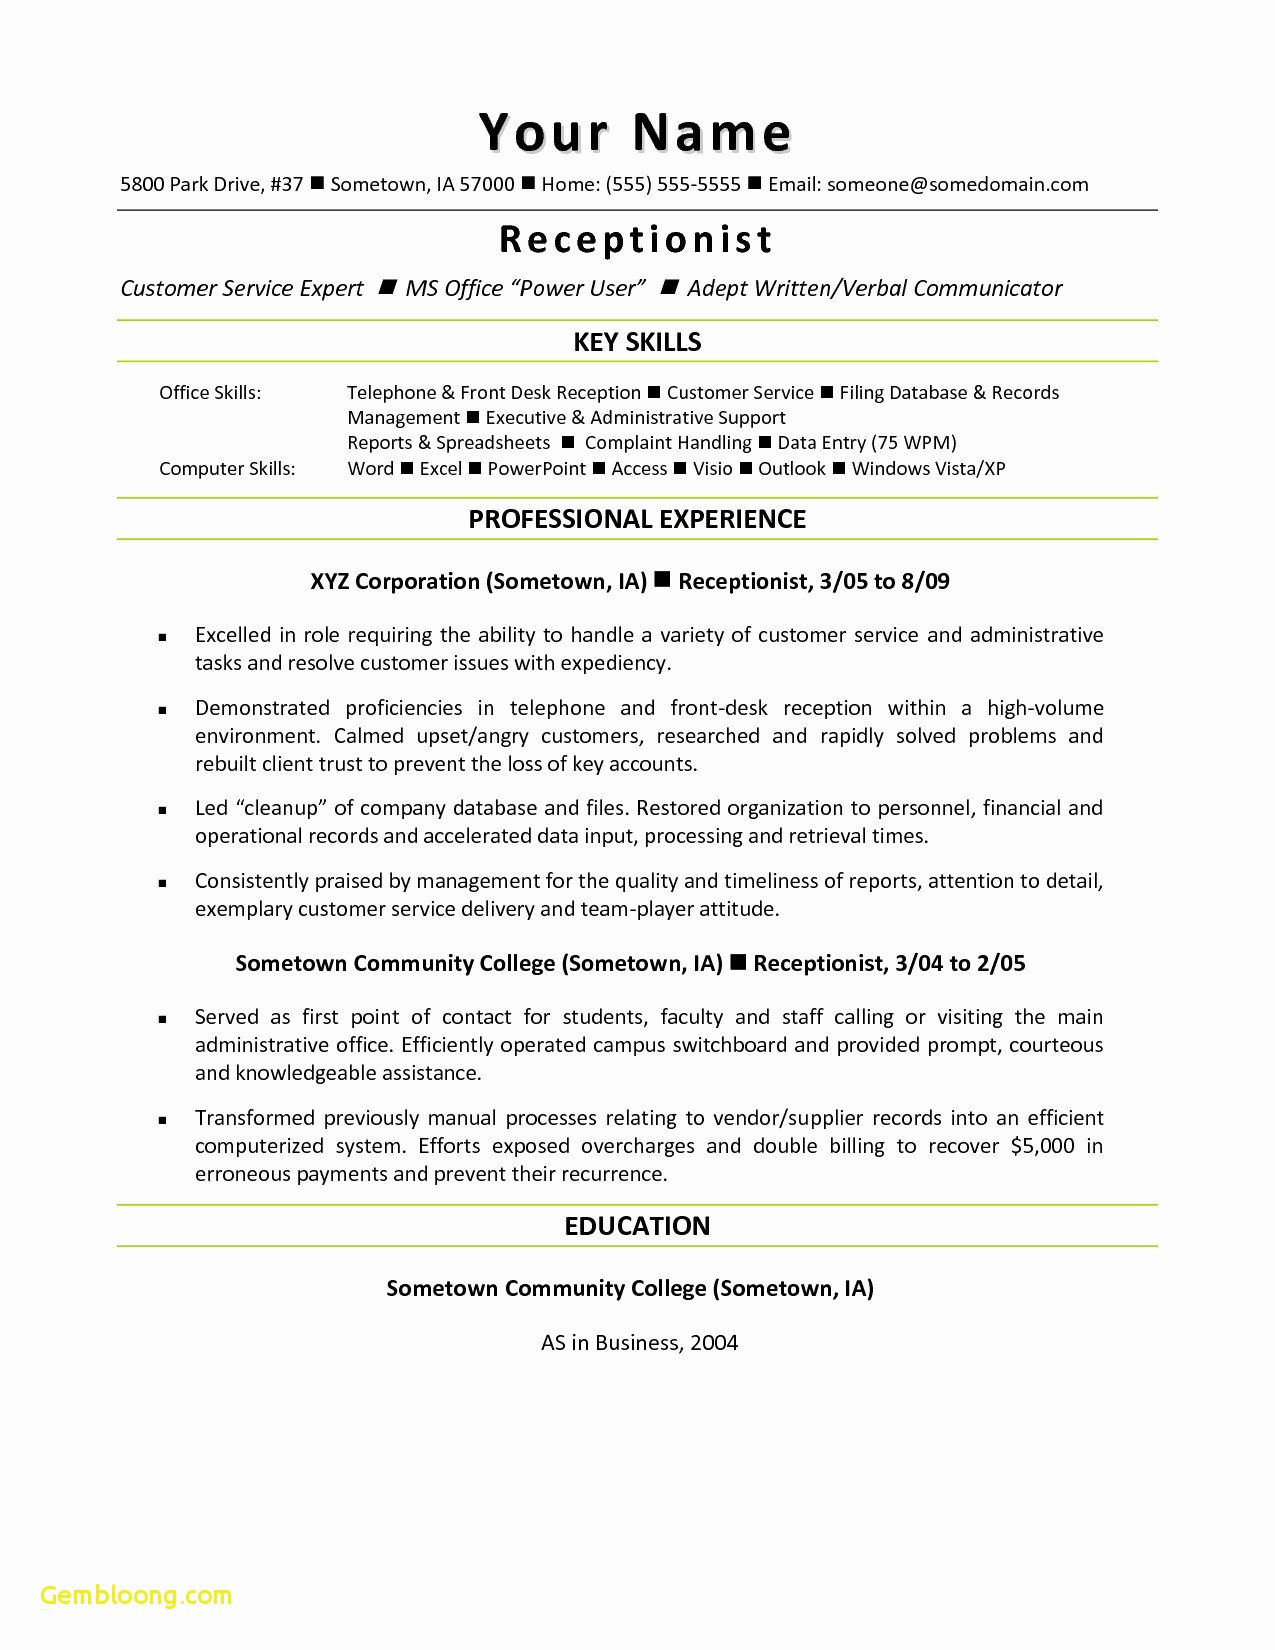 Going Paperless Letter to Customers Template - 21 Free Customer Service Resume Bcbostonians1986